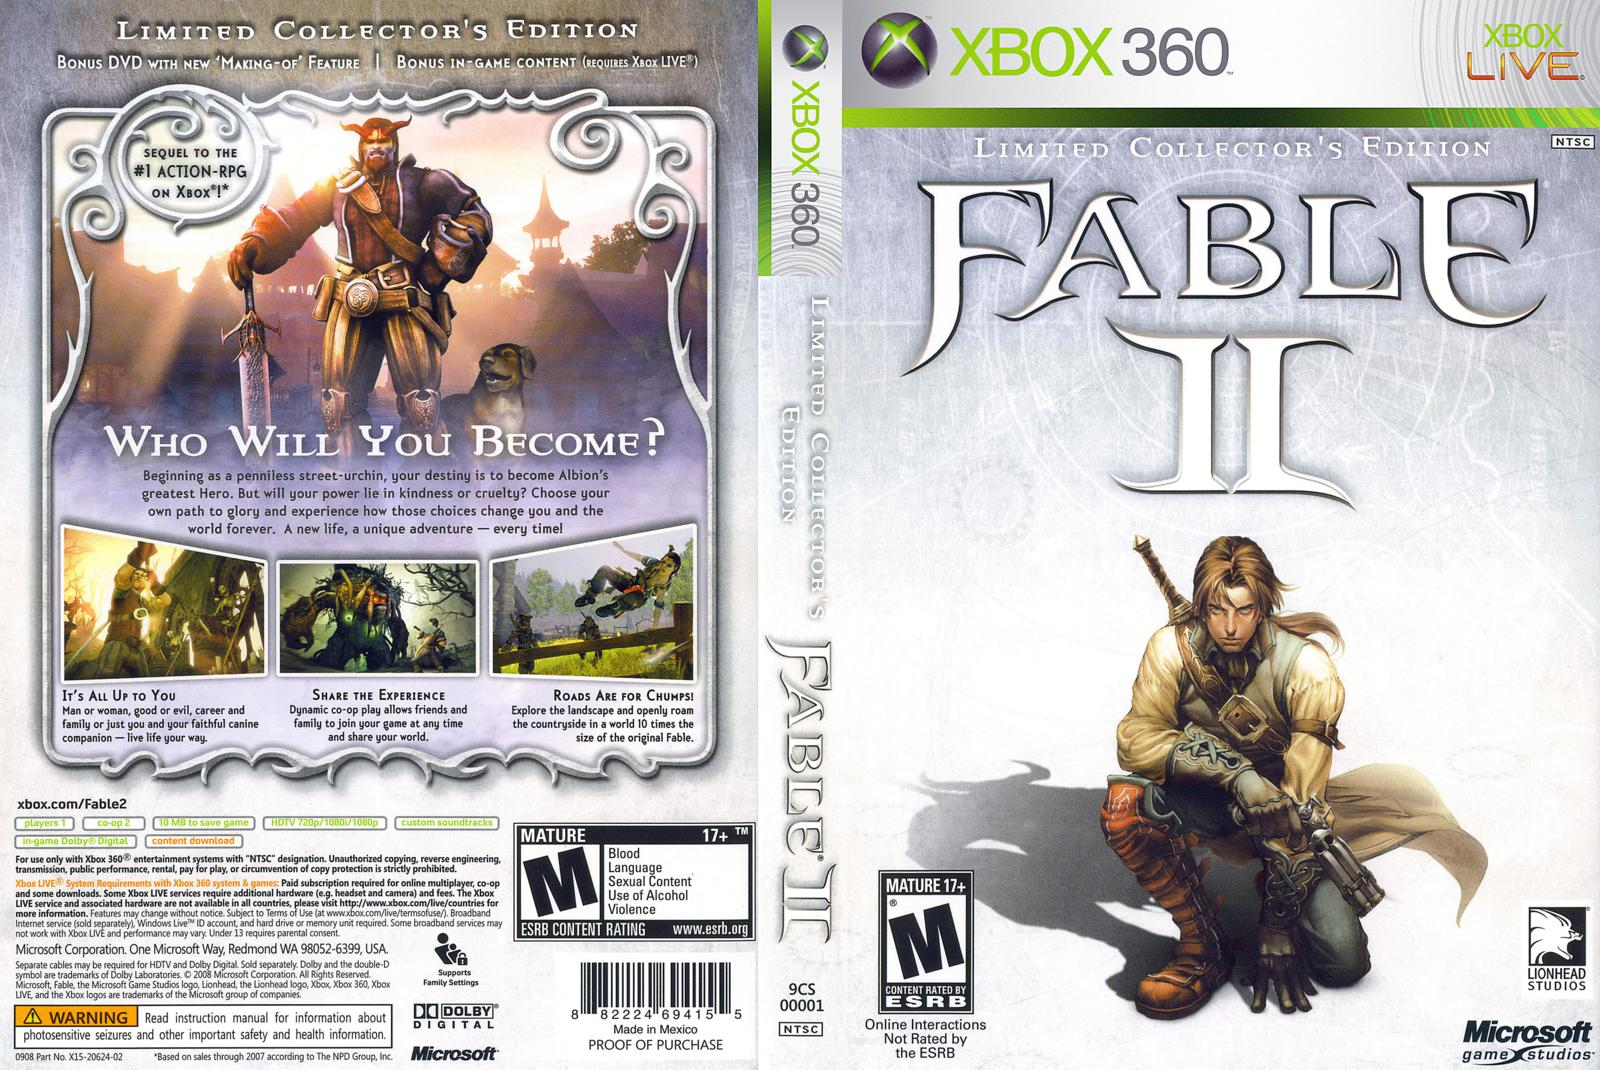 Capa Fable II Limited Collectors Edition Xbox 360